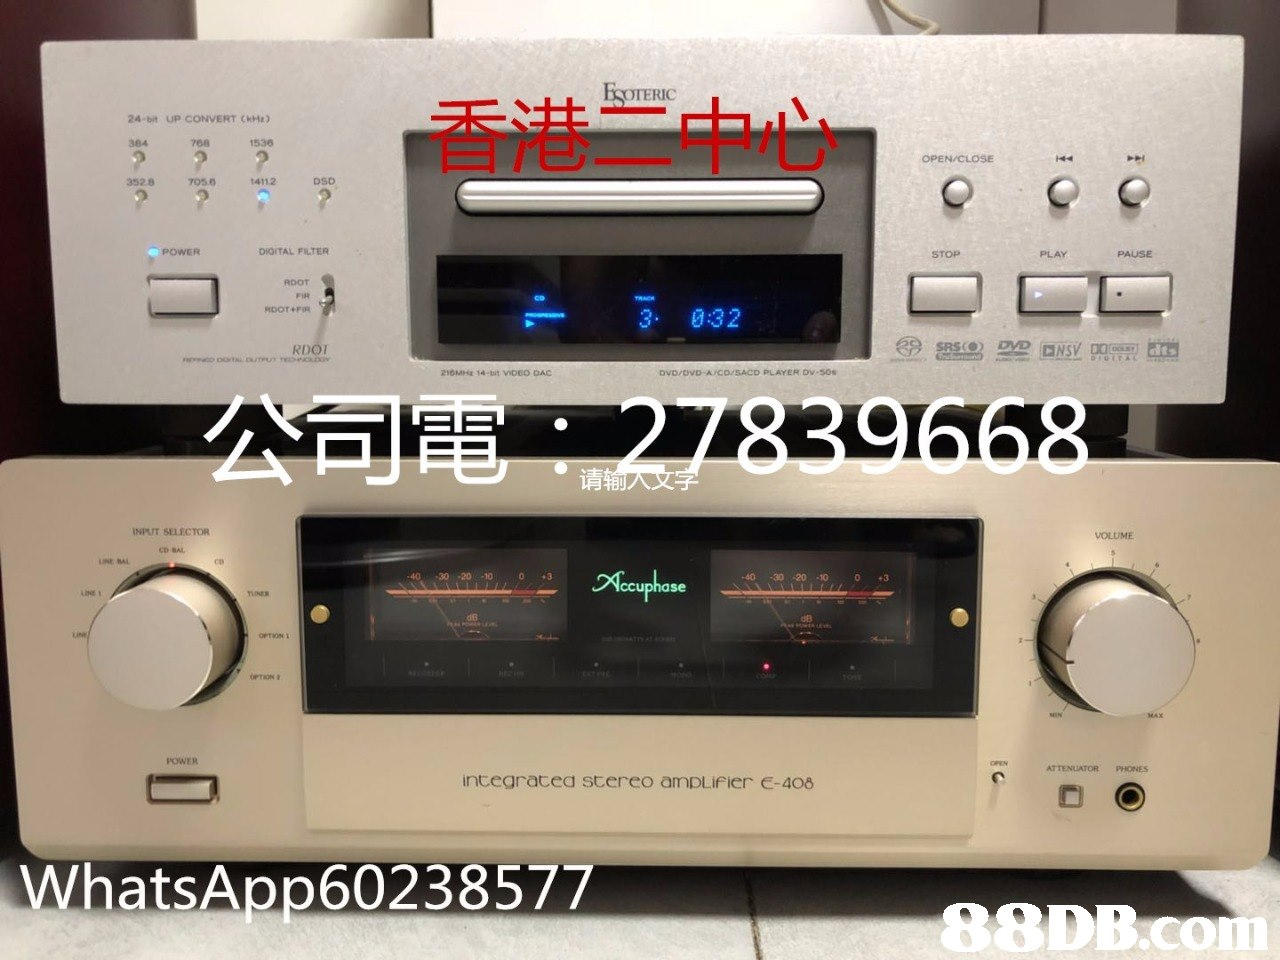 ESOTERIC 香港二中心 24-bit UP CONVERT CkH) 708 536 OPEN/CLOSE 3528 705 ฮ 14112 DSD POWER DIOITAL FILTER STOP PLAY PAUSE RDOT 3. 032 RI 2I0MHa 14-bit VIDEO DAC PLAYER DV 50s 子 INPUT SELECTOR VOLUME CD SAL LINE RAL ce Accuphase 0 3 40 30 20 10 LINE OPTION POWER integratea stereo amDLifier -408 WhatsApp60238577  technology,audio receiver,electronics,electronic device,radio receiver